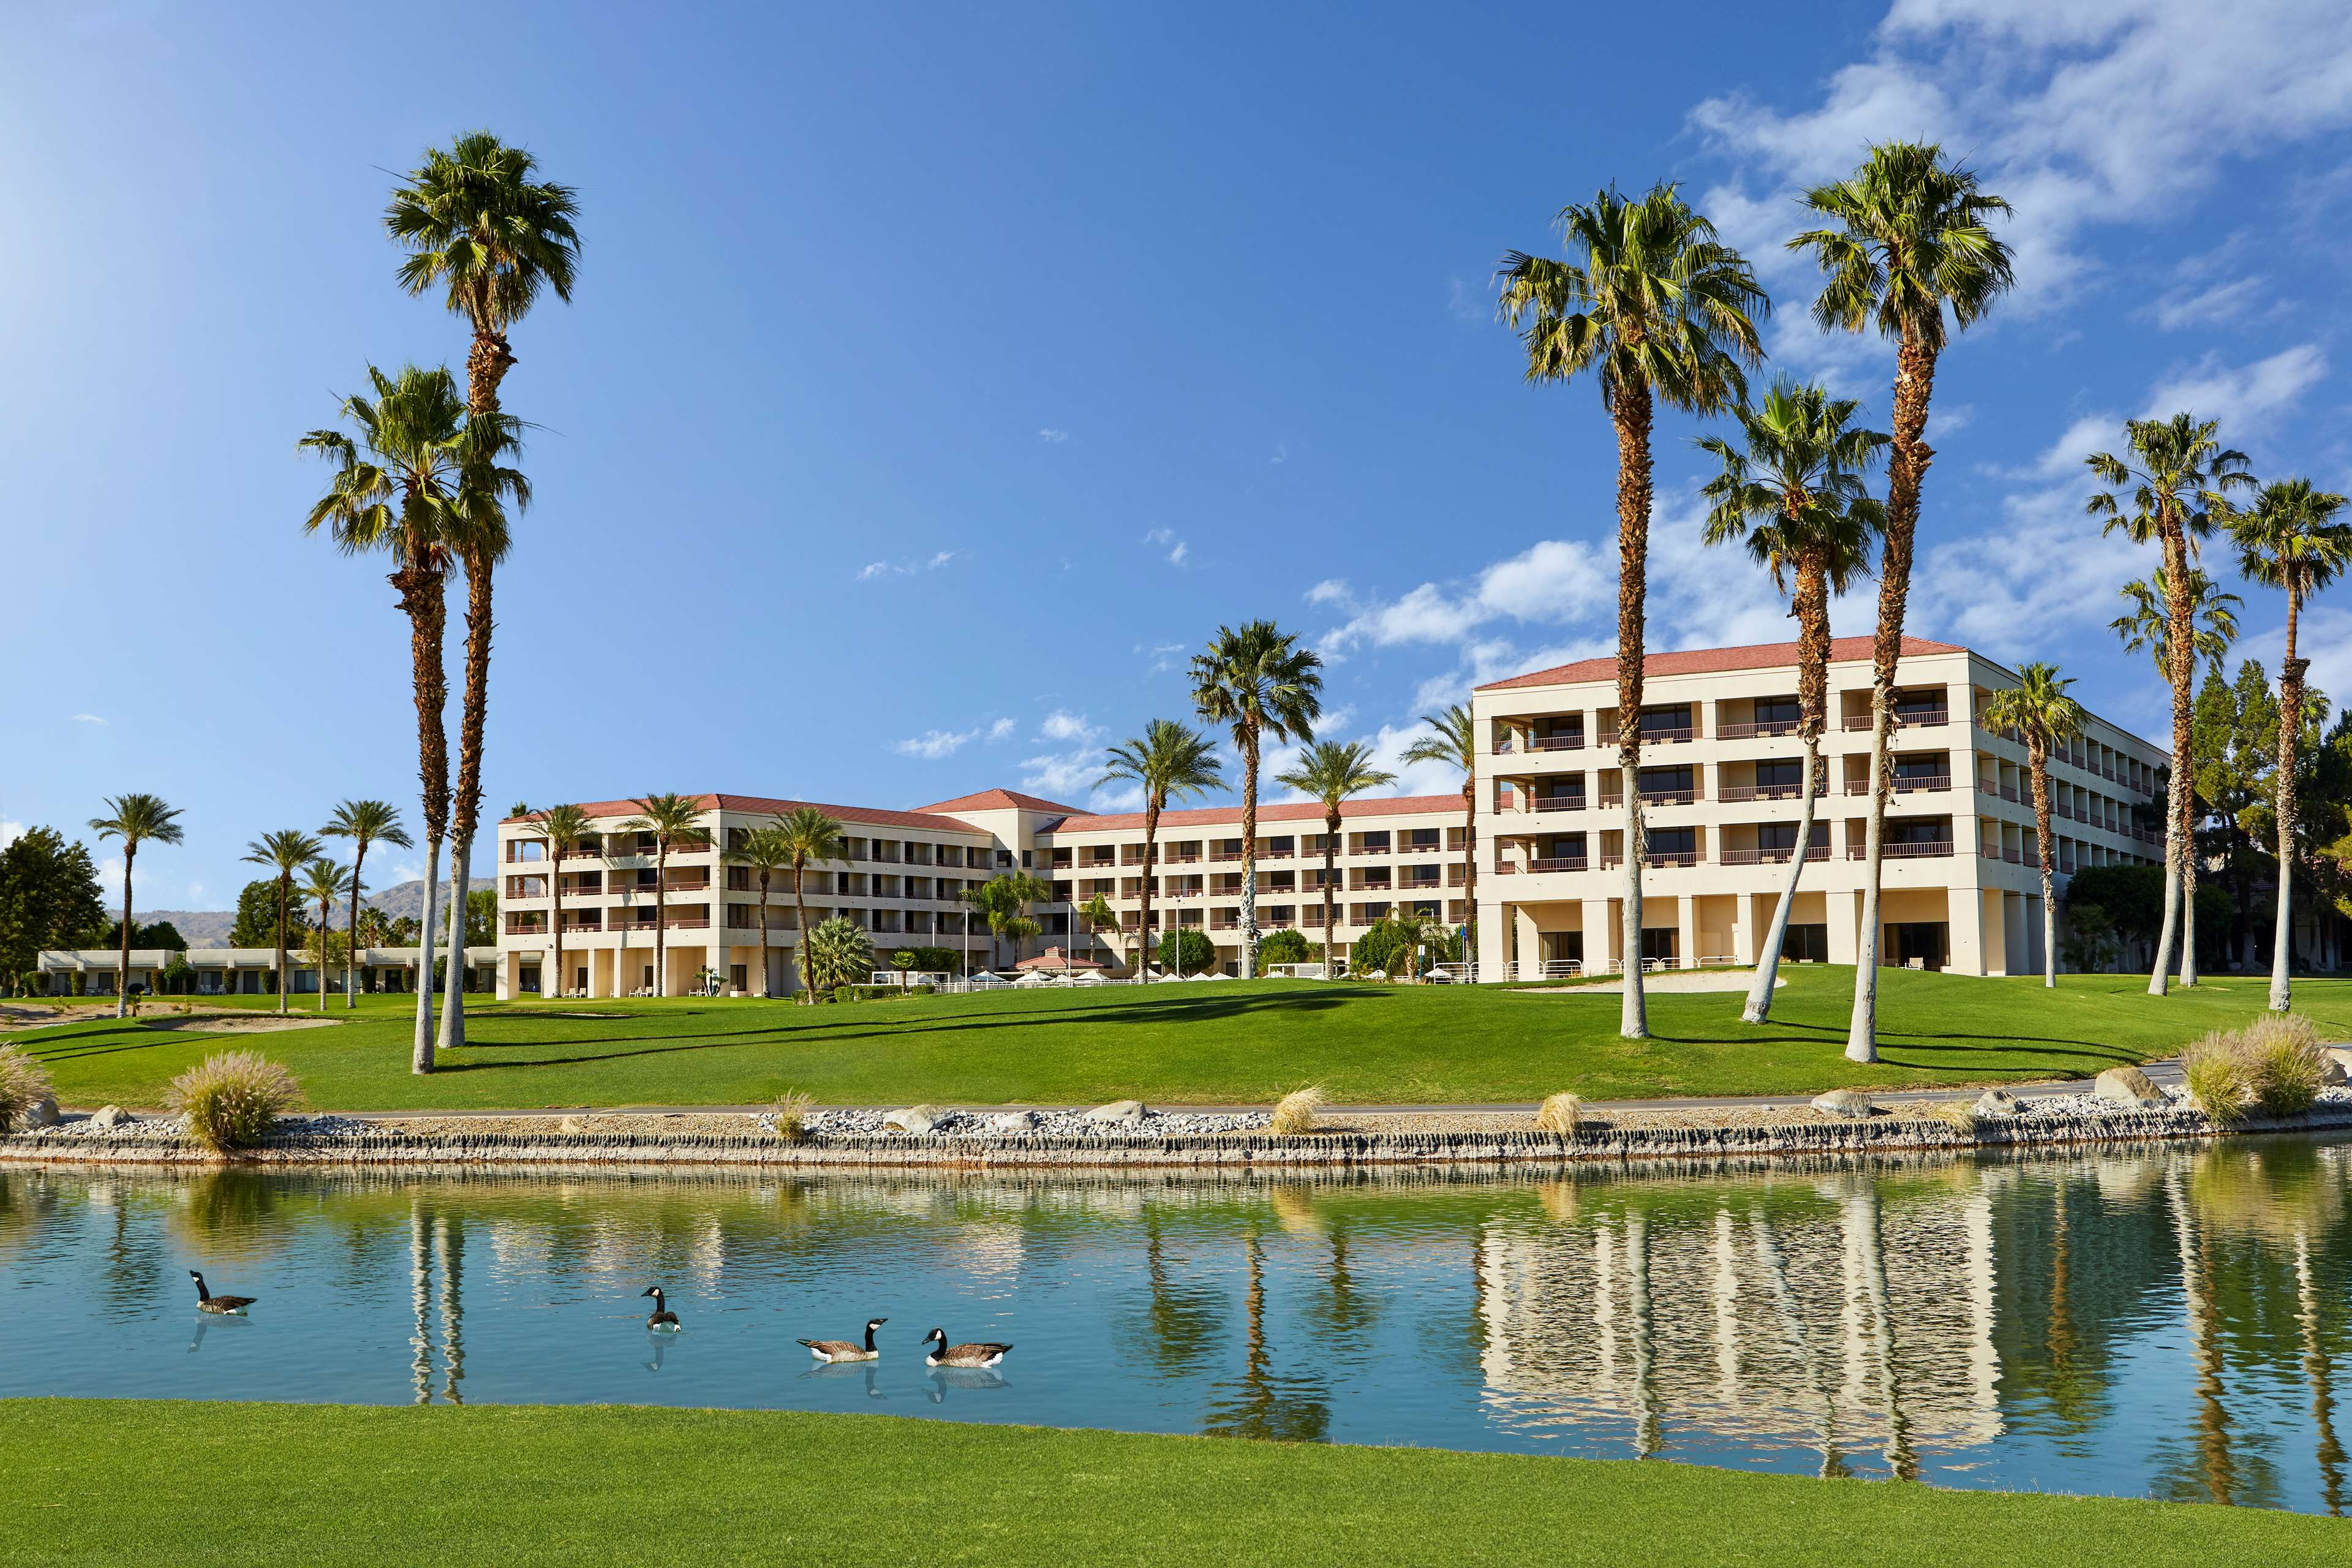 DoubleTree by Hilton Hotel Golf Resort Palm Springs image 6